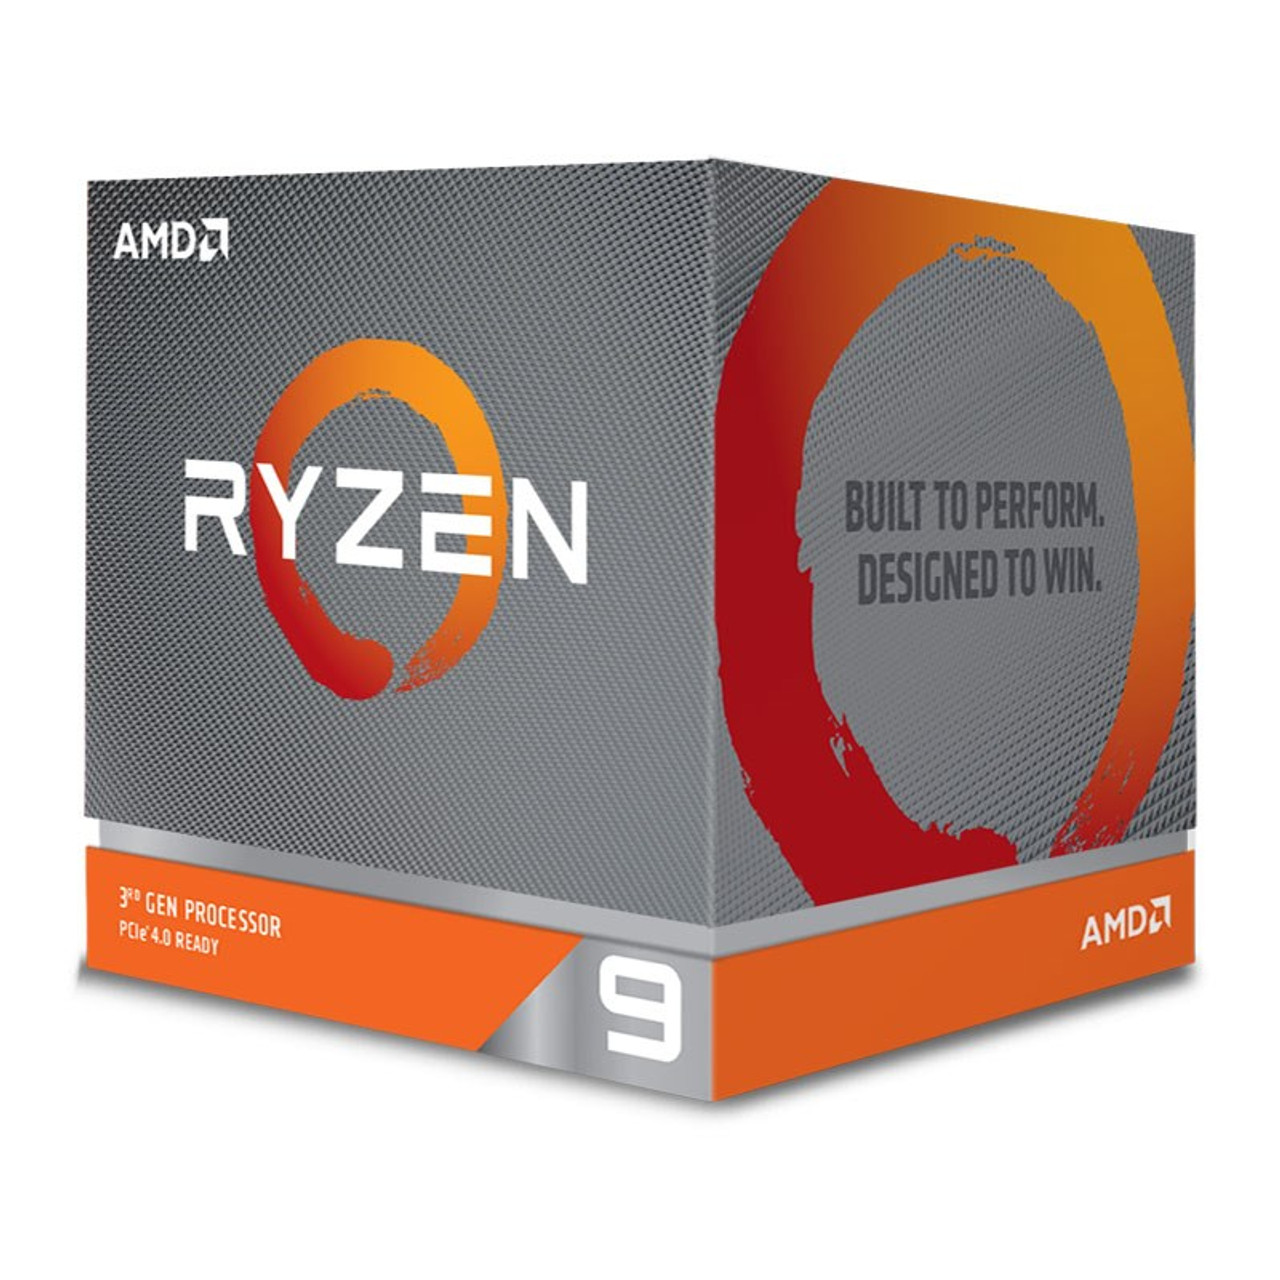 AMD Ryzen 9 3900X with Wraith Prism